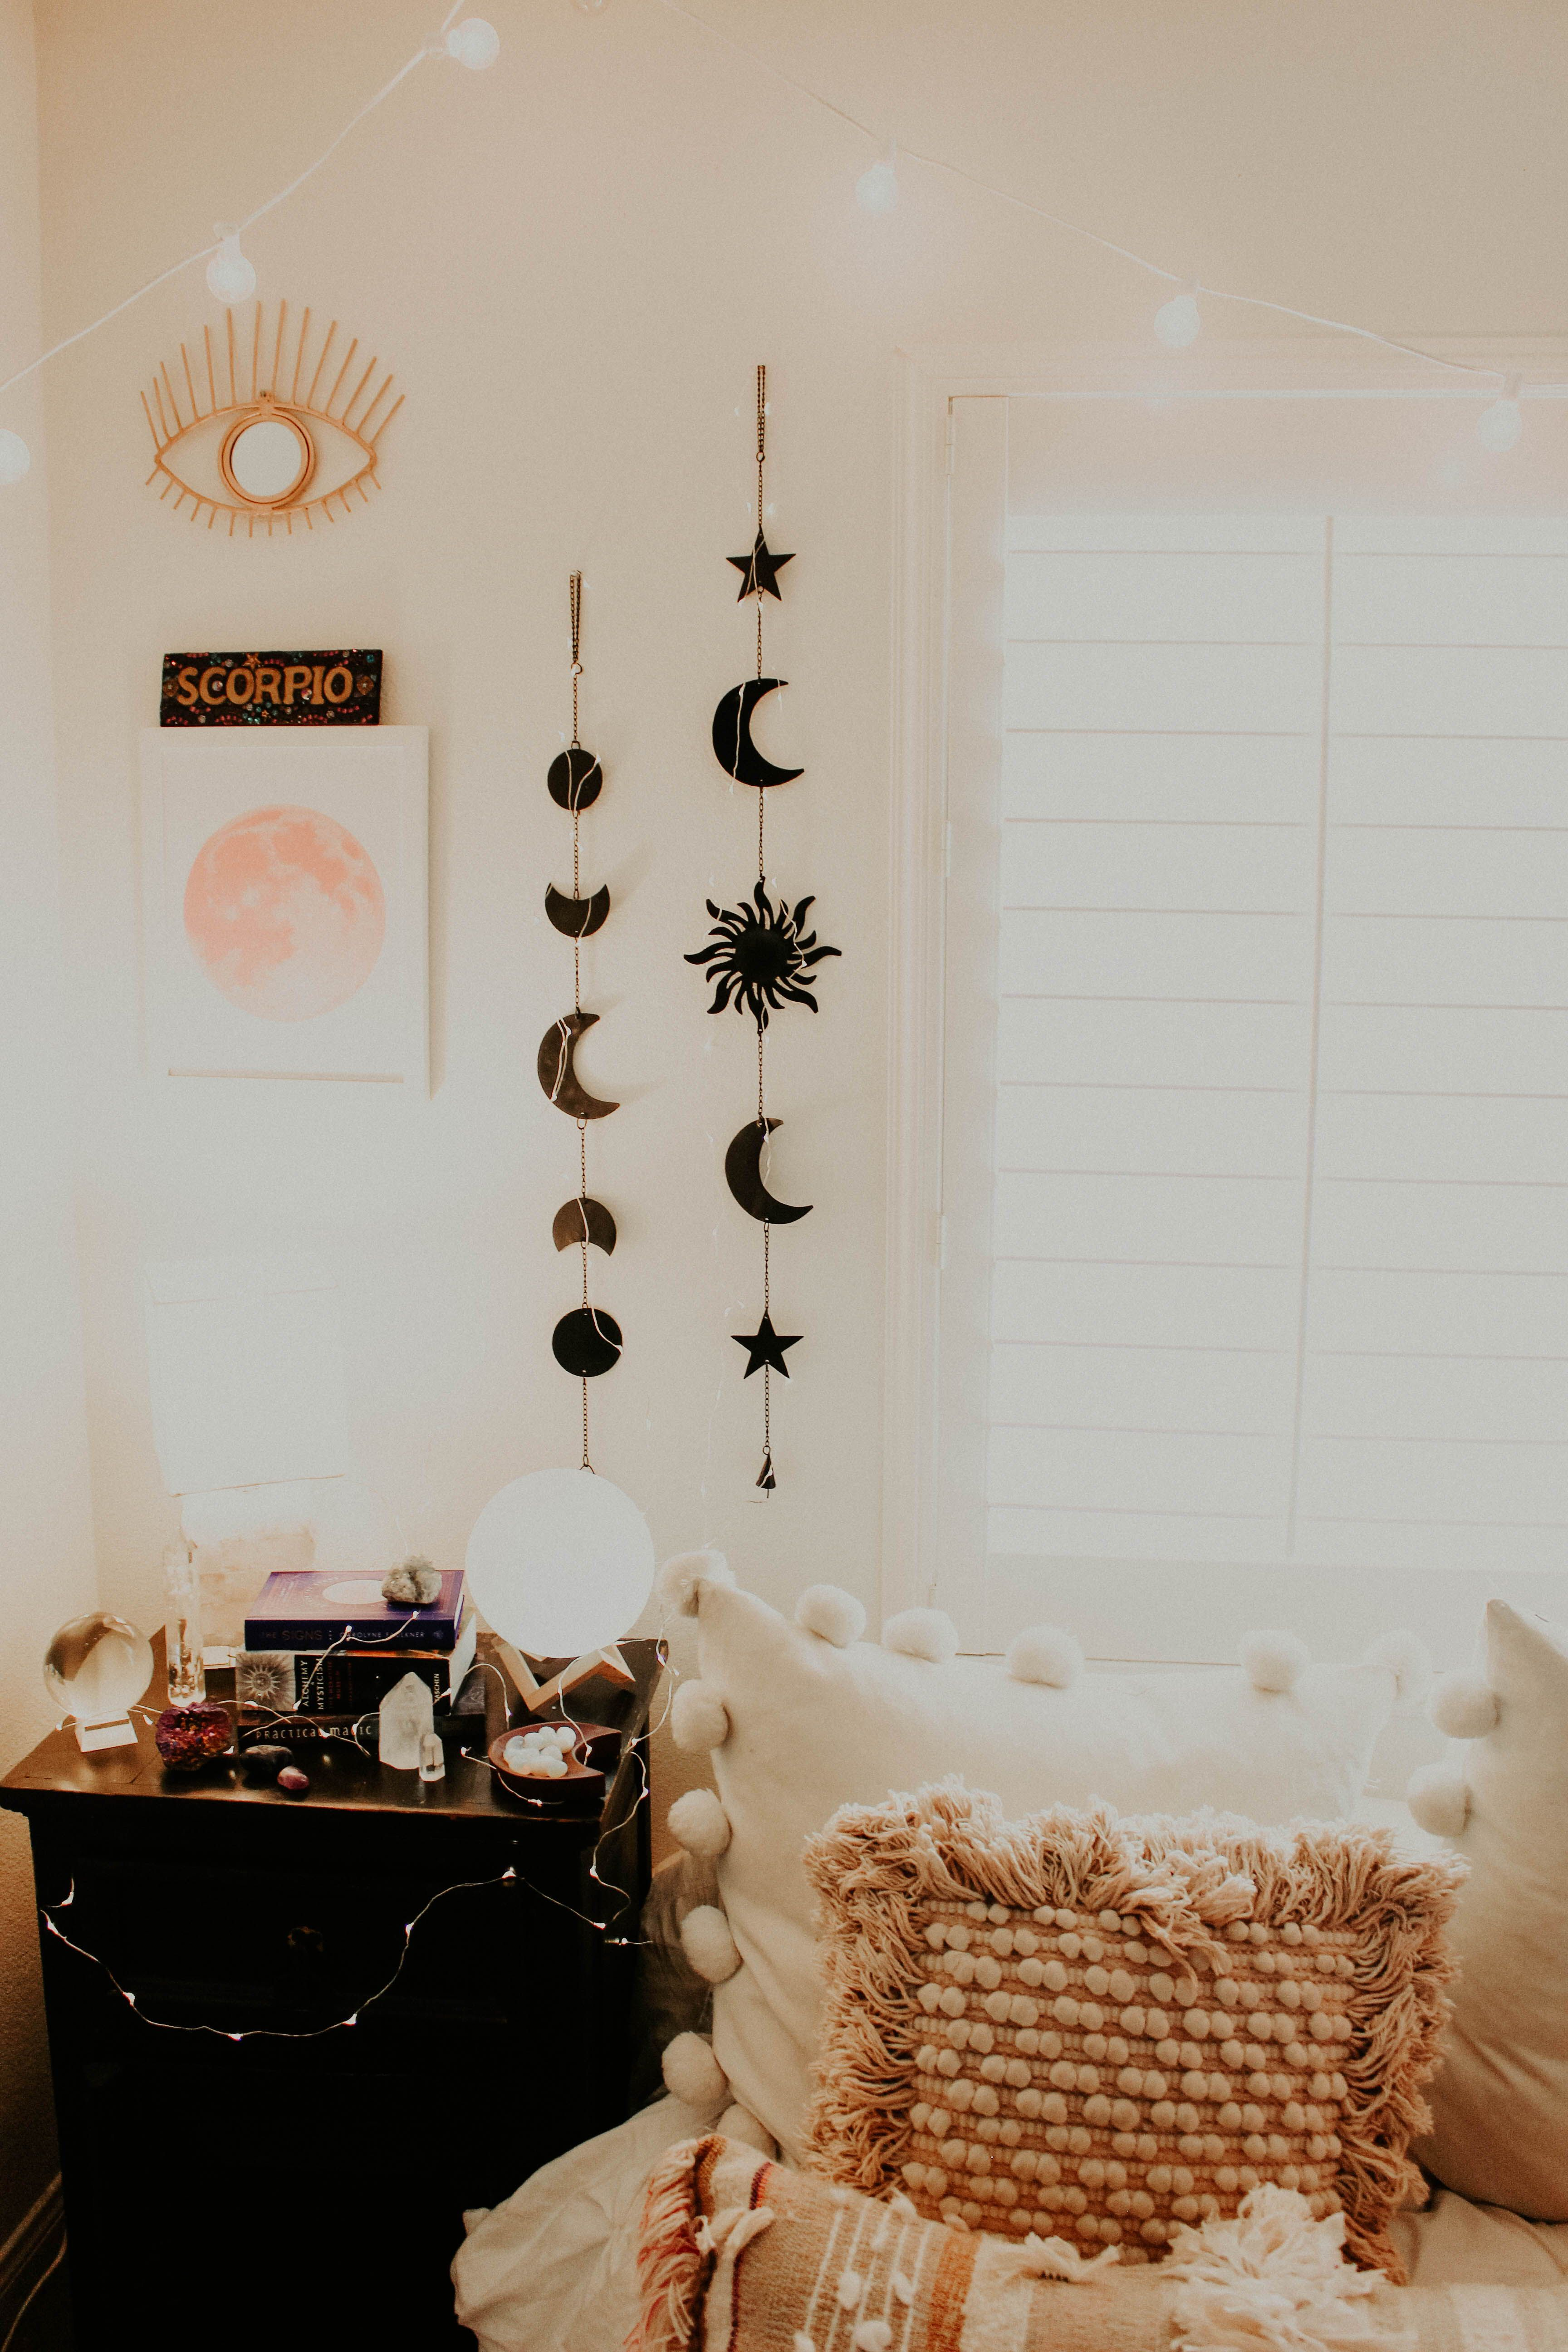 Moon Phases Wall Hanging Decor Aesthetic Rooms Room Decor Room